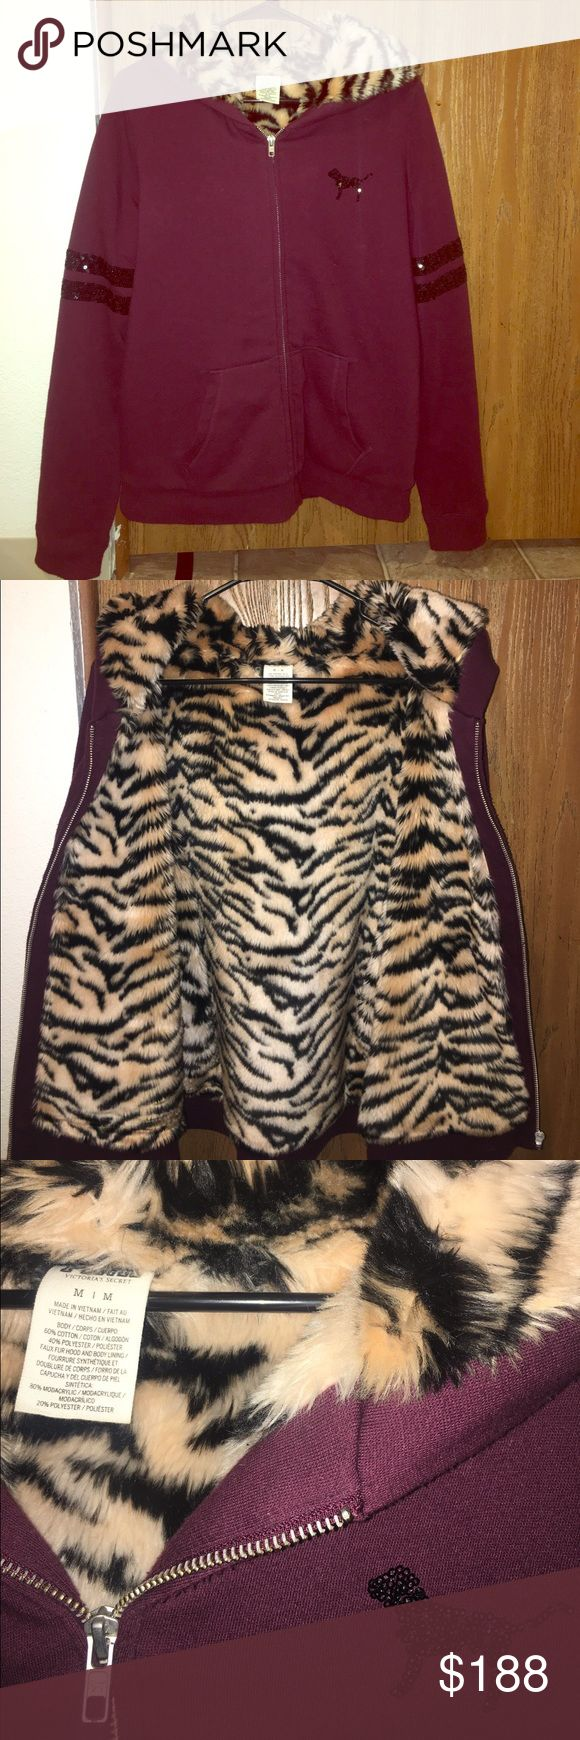 Victoria's Secret pink rare tiger fur hoodie Amazing condition! worn up to 2-3 times!! This is limited edition and goes for a lot. I'd maybe trade but it would have to be for a few items. This sells for A LOT! Trading price is $200+- depending. Feel free to make an offer thru the offer button! PINK Victoria's Secret Sweaters